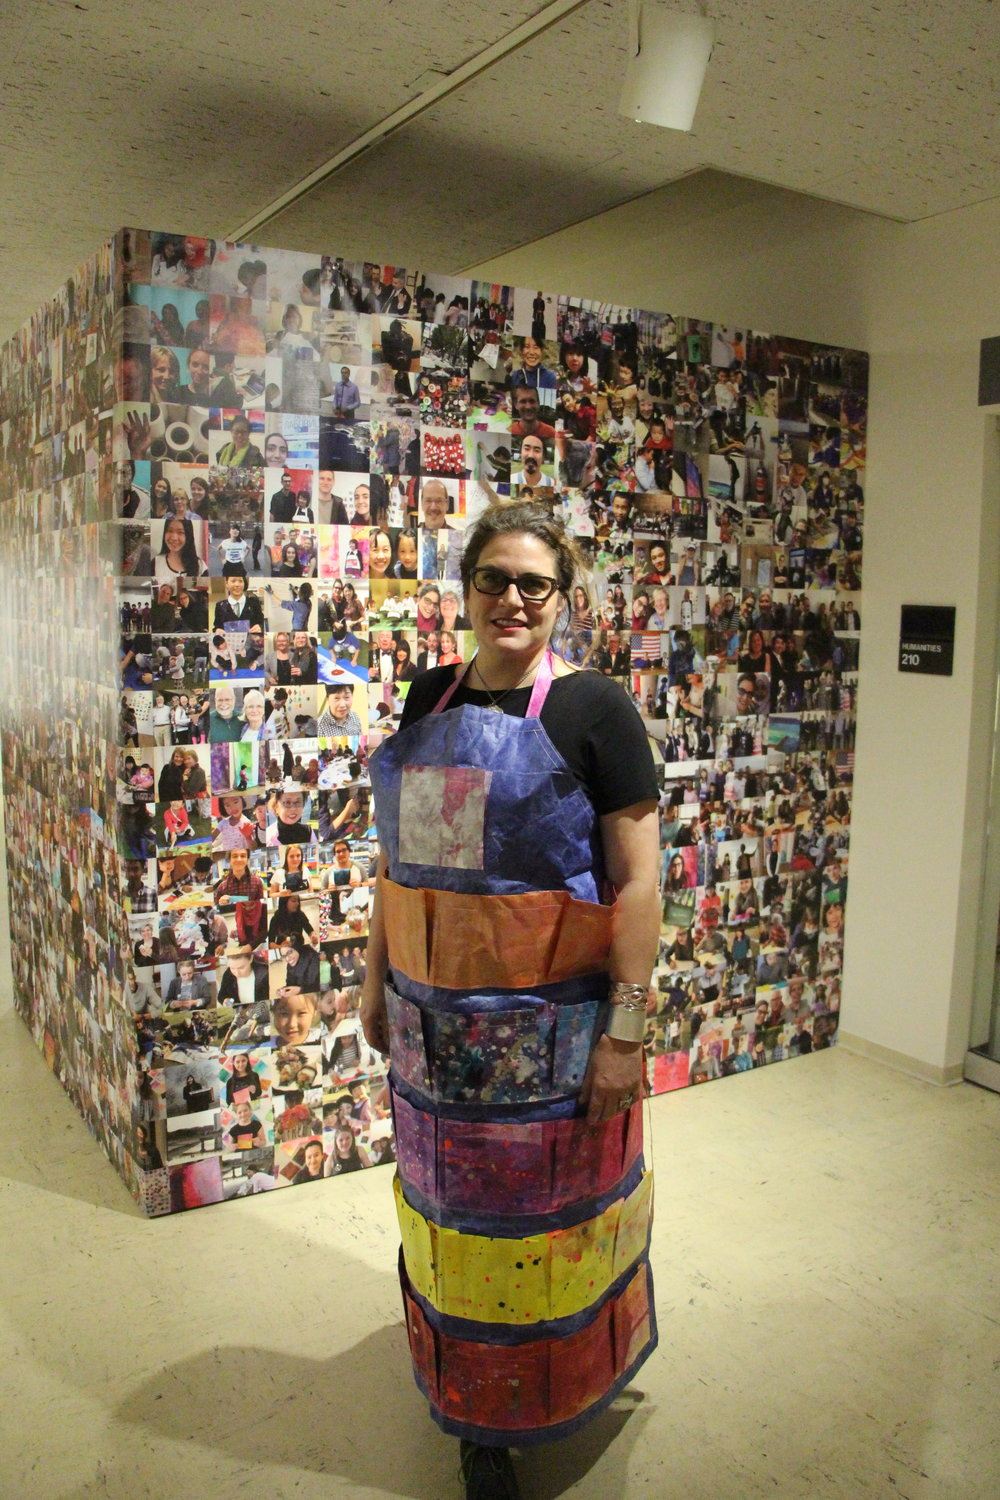 """Labovitz wearing a """"celestial generosity apron"""" standing in front of pictures from her art workshops. Photo by Jakob Bermas"""